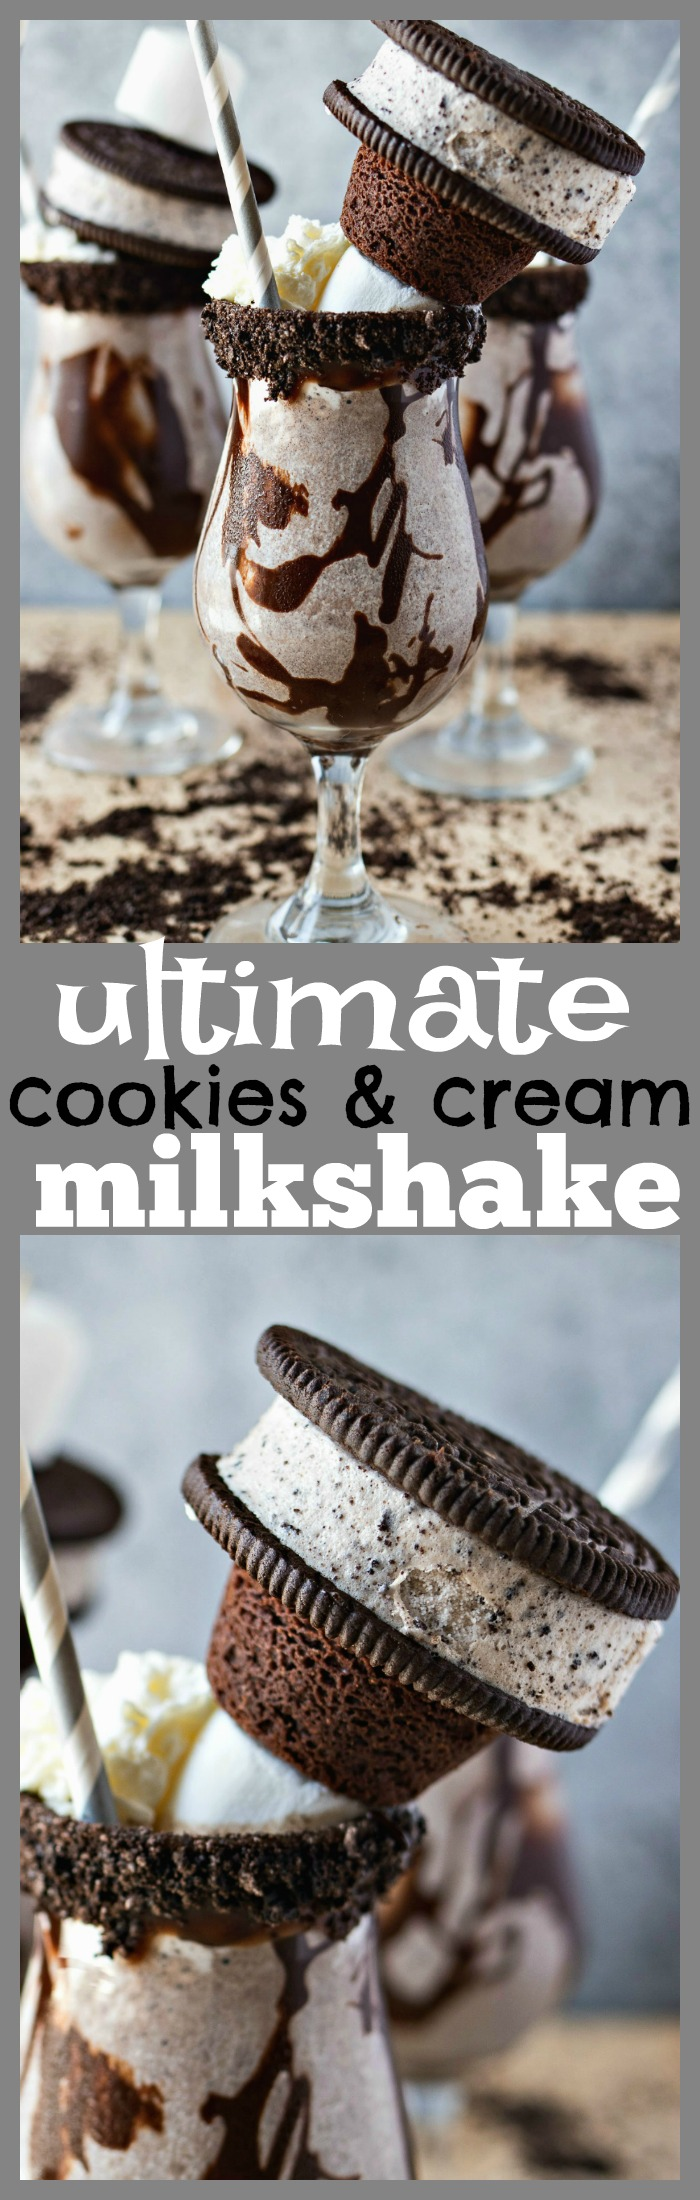 The Ultimate Cookies & Cream Milkshake photo collage